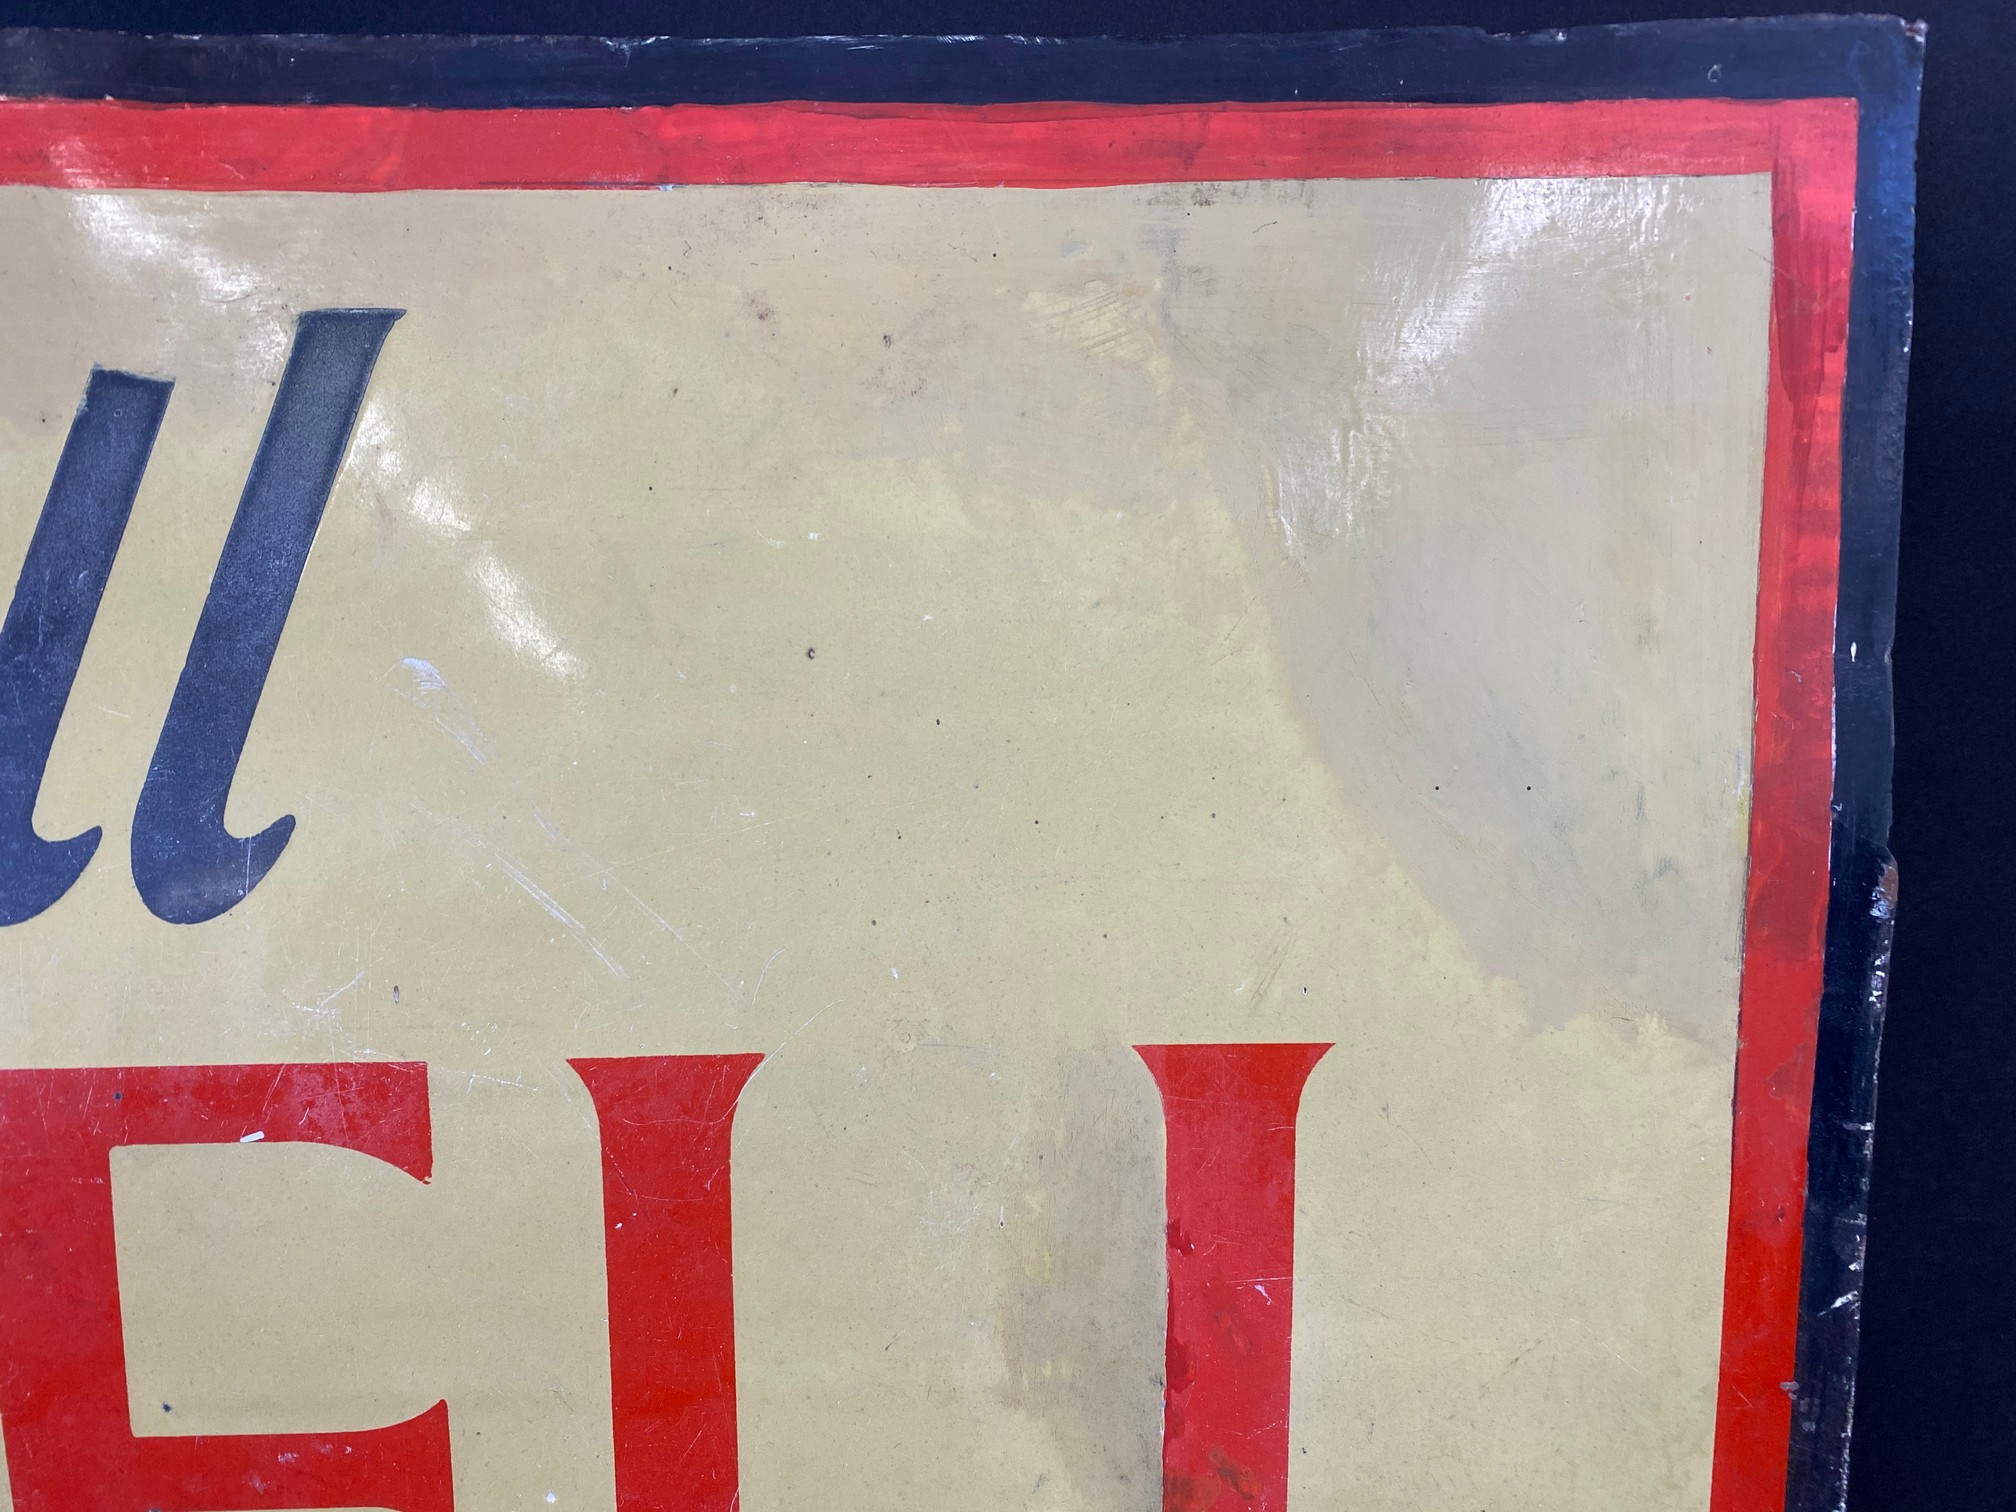 A Shell Lubricating Oils 'Every Drop Tells' pictorial enamel sign with some patches of - Image 2 of 8